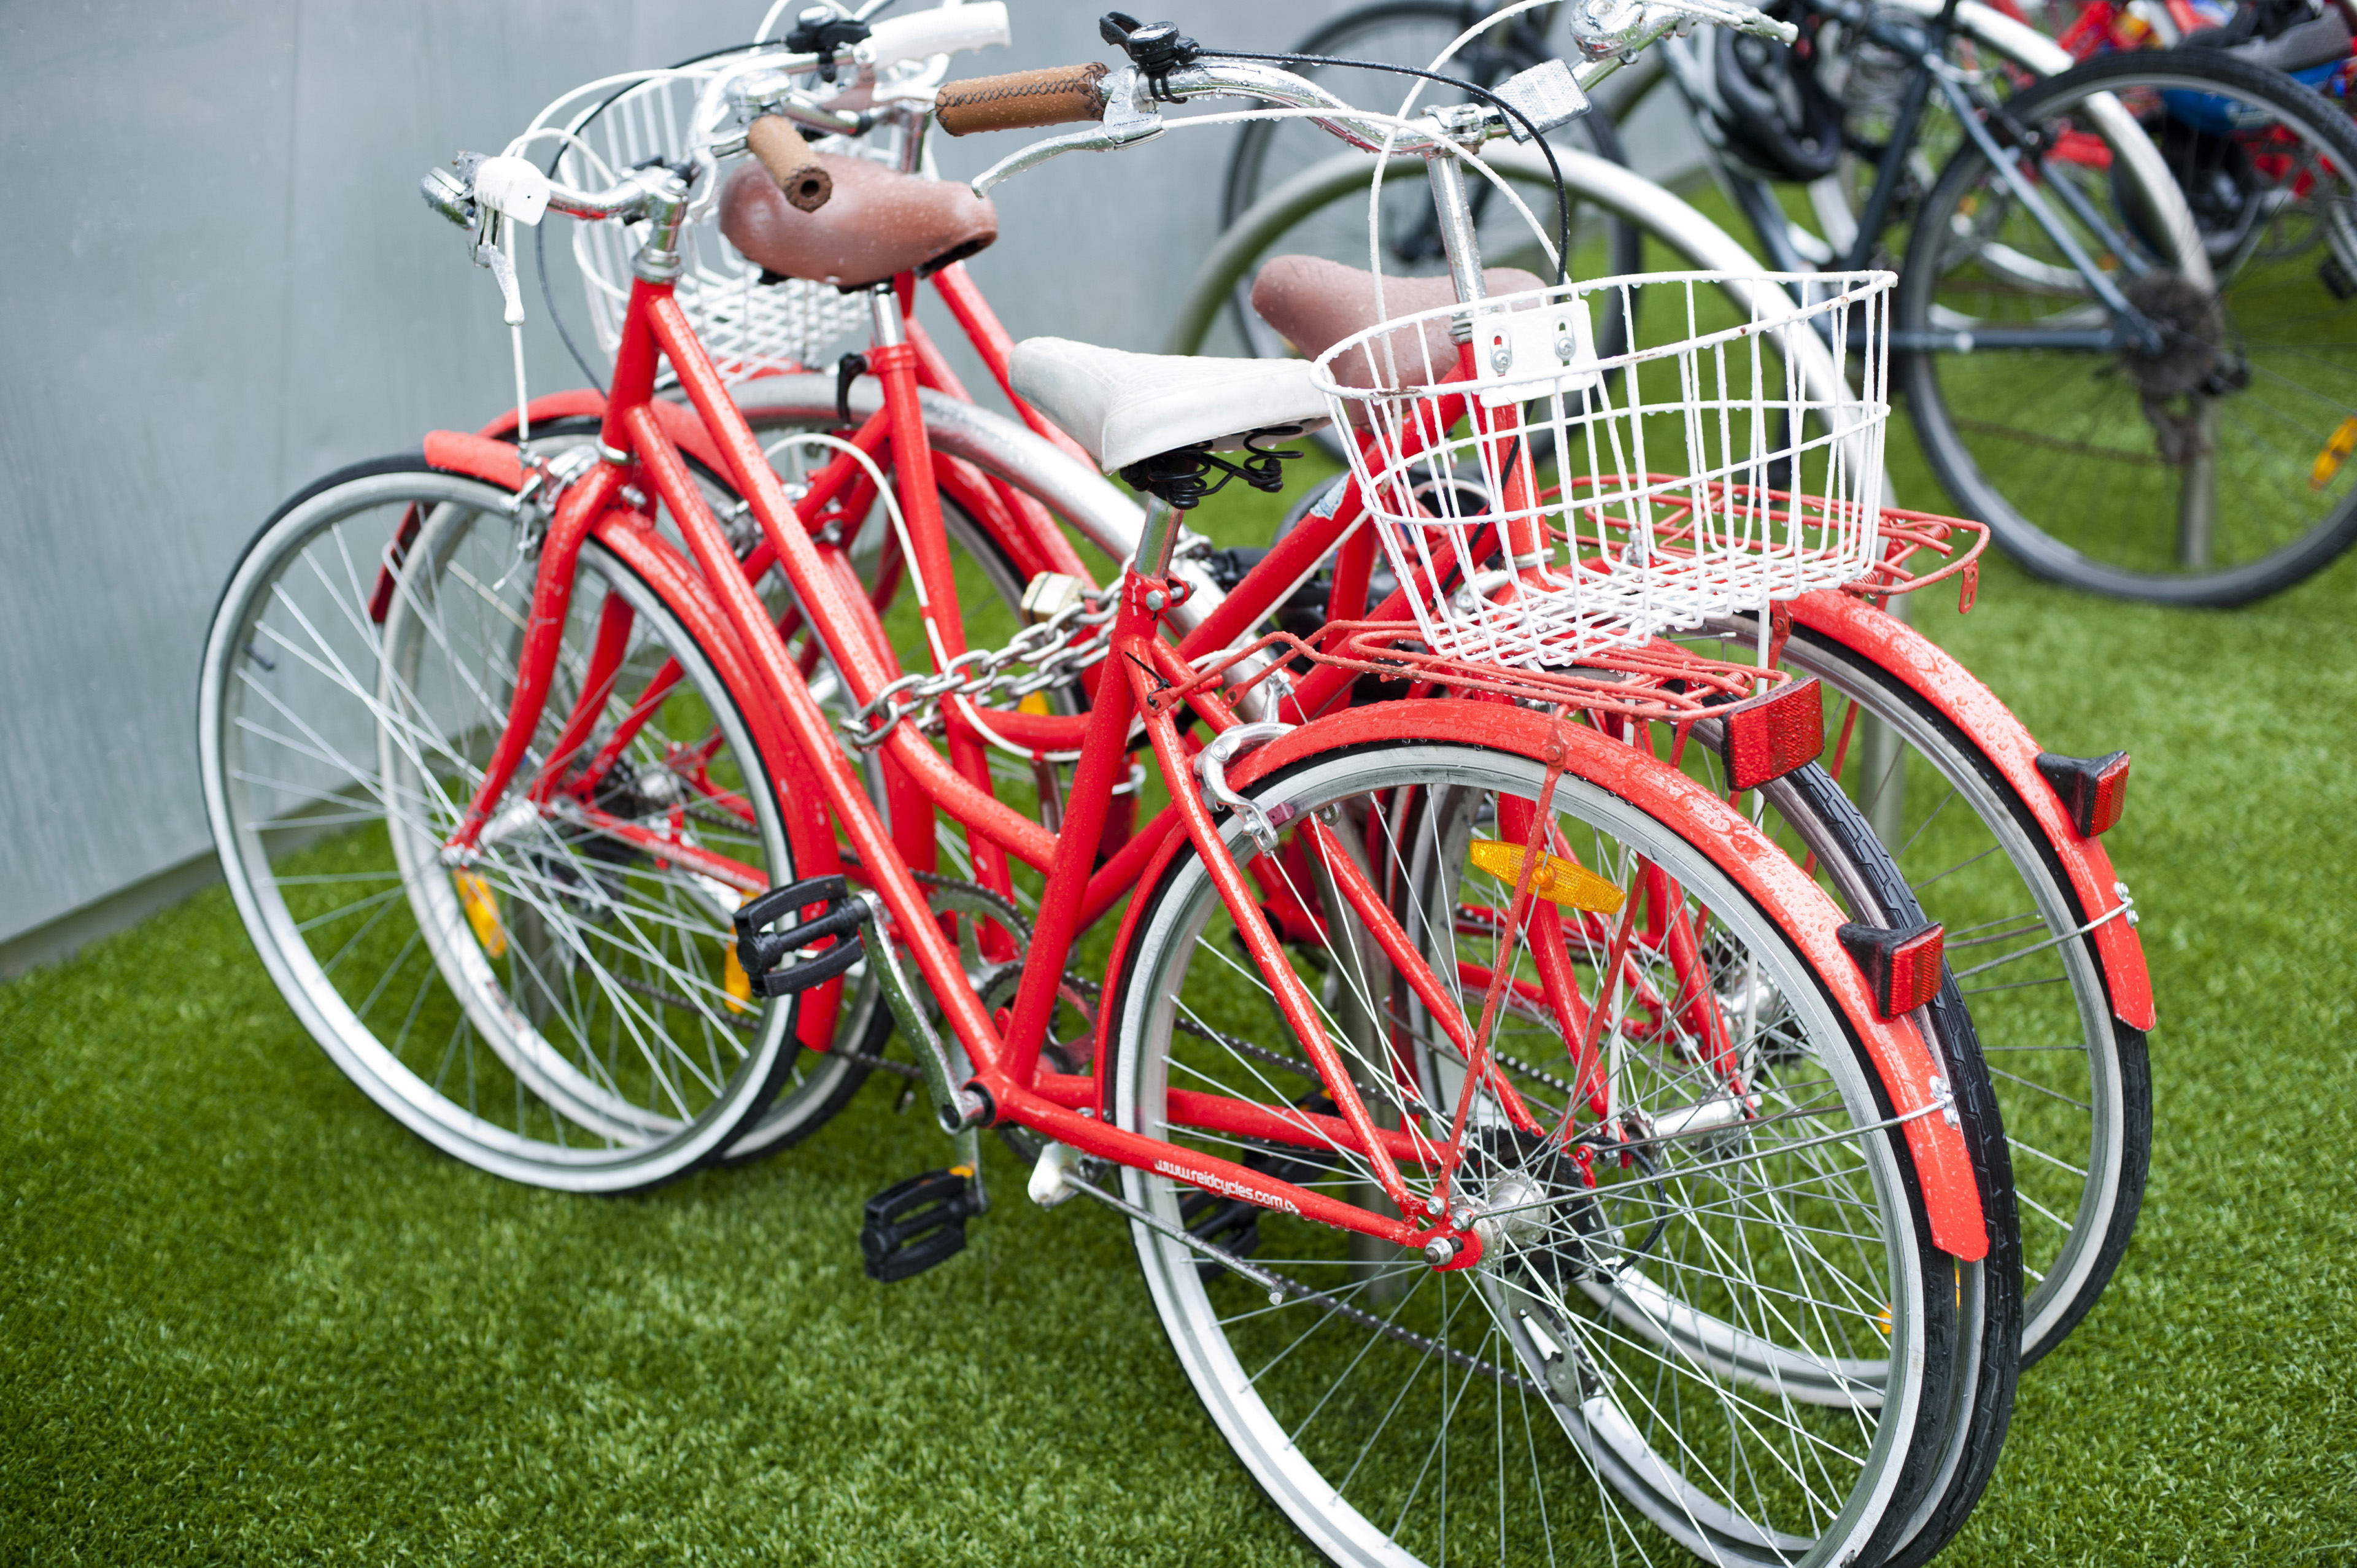 Pair of Red Bicycles with White Baskets Chained Up Side by Side on Green Astroturf